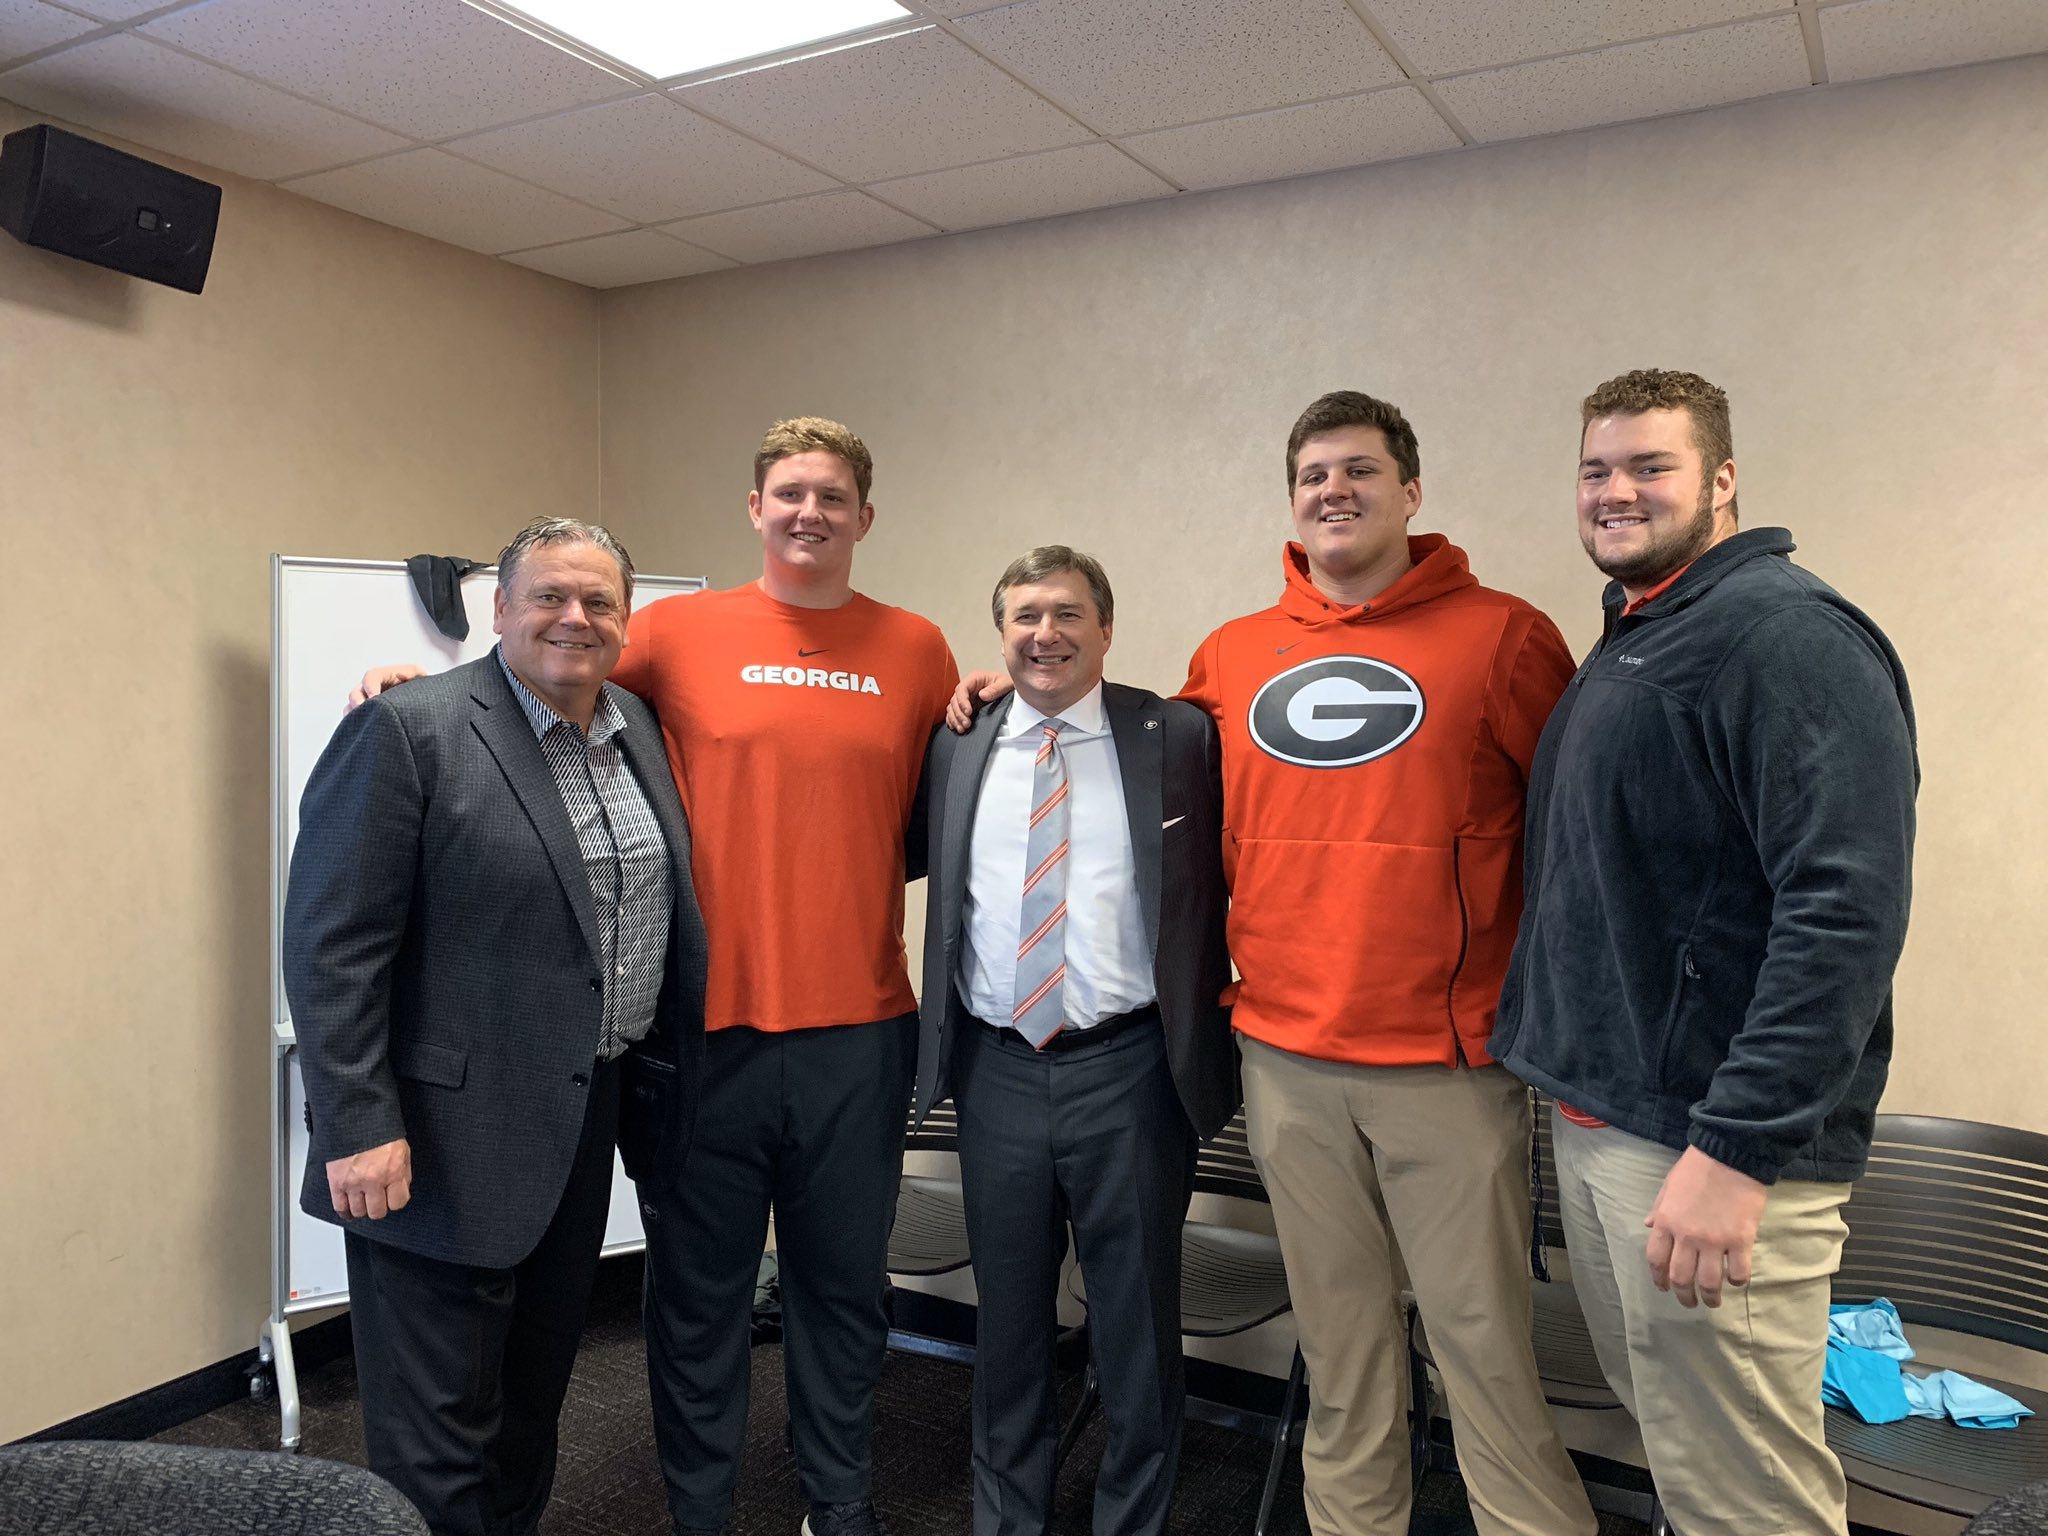 Photo: Sam Pittman (left), Kirby Smart (center), with 2020 offensive line commits Joshua Braun, Chad Lindberg, and Tate Ratledge.